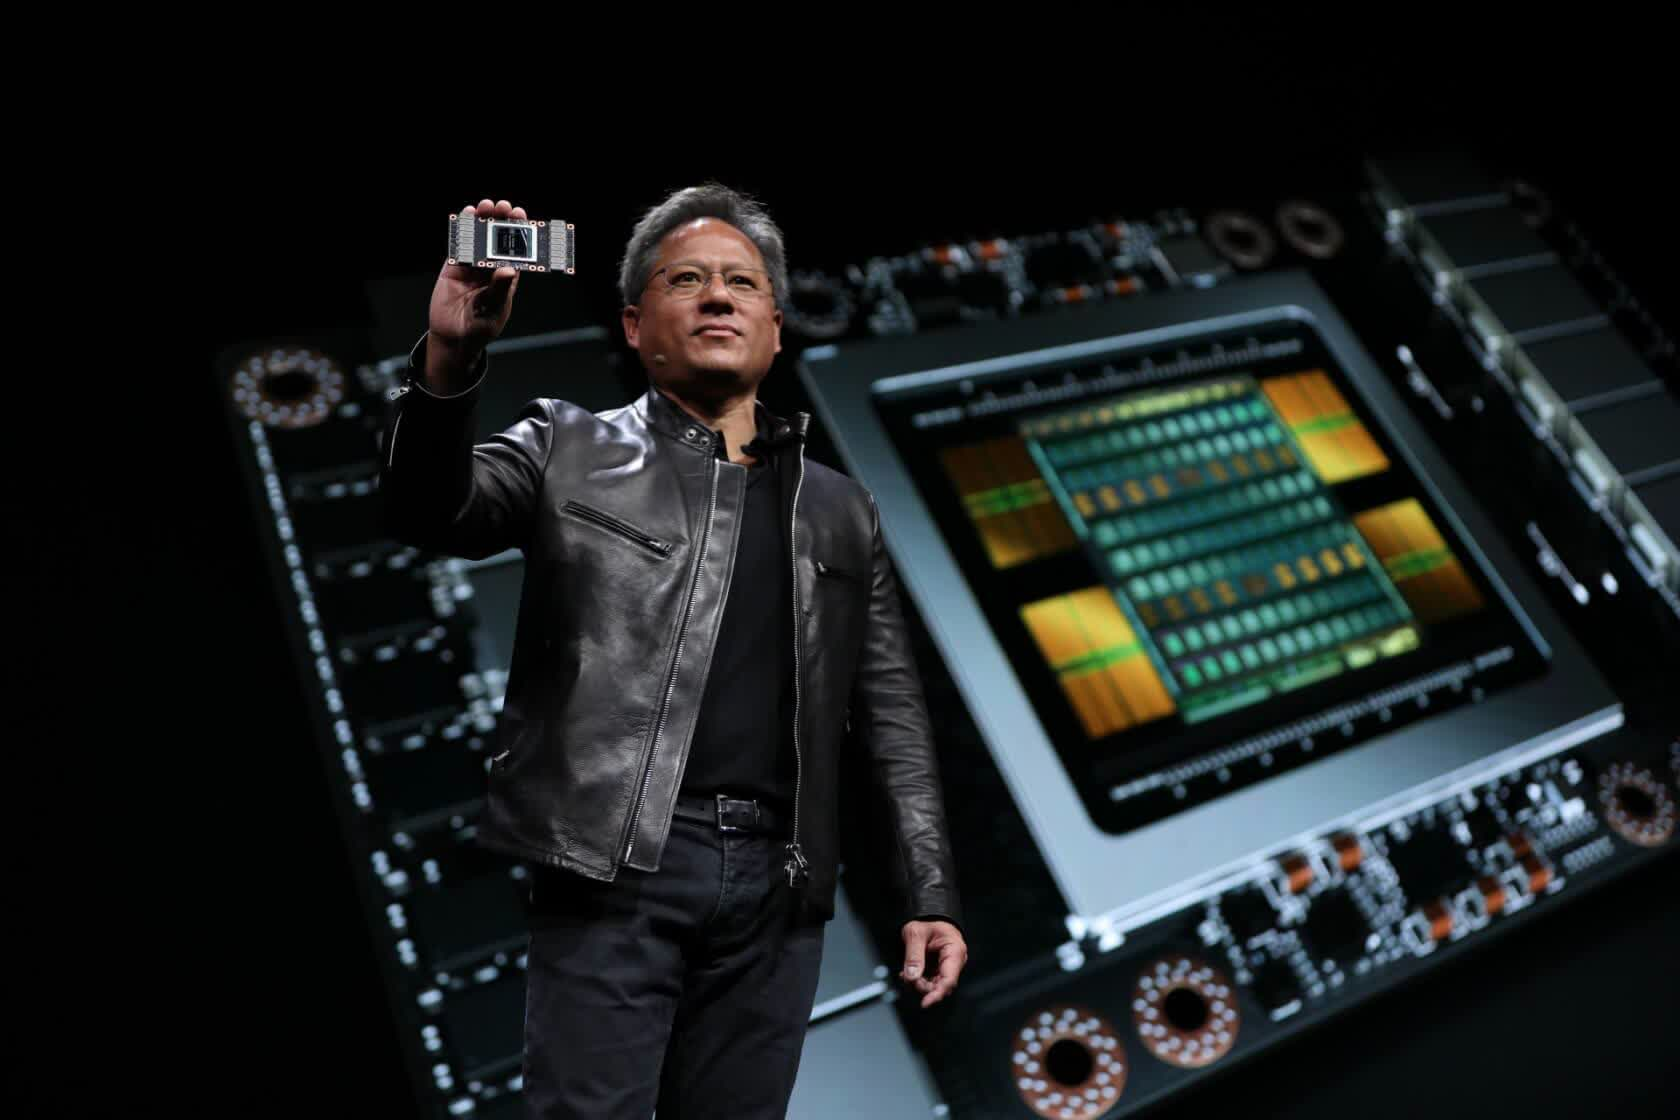 Nvidia CEO Jensen Huang to receive semiconductor industry's top honor